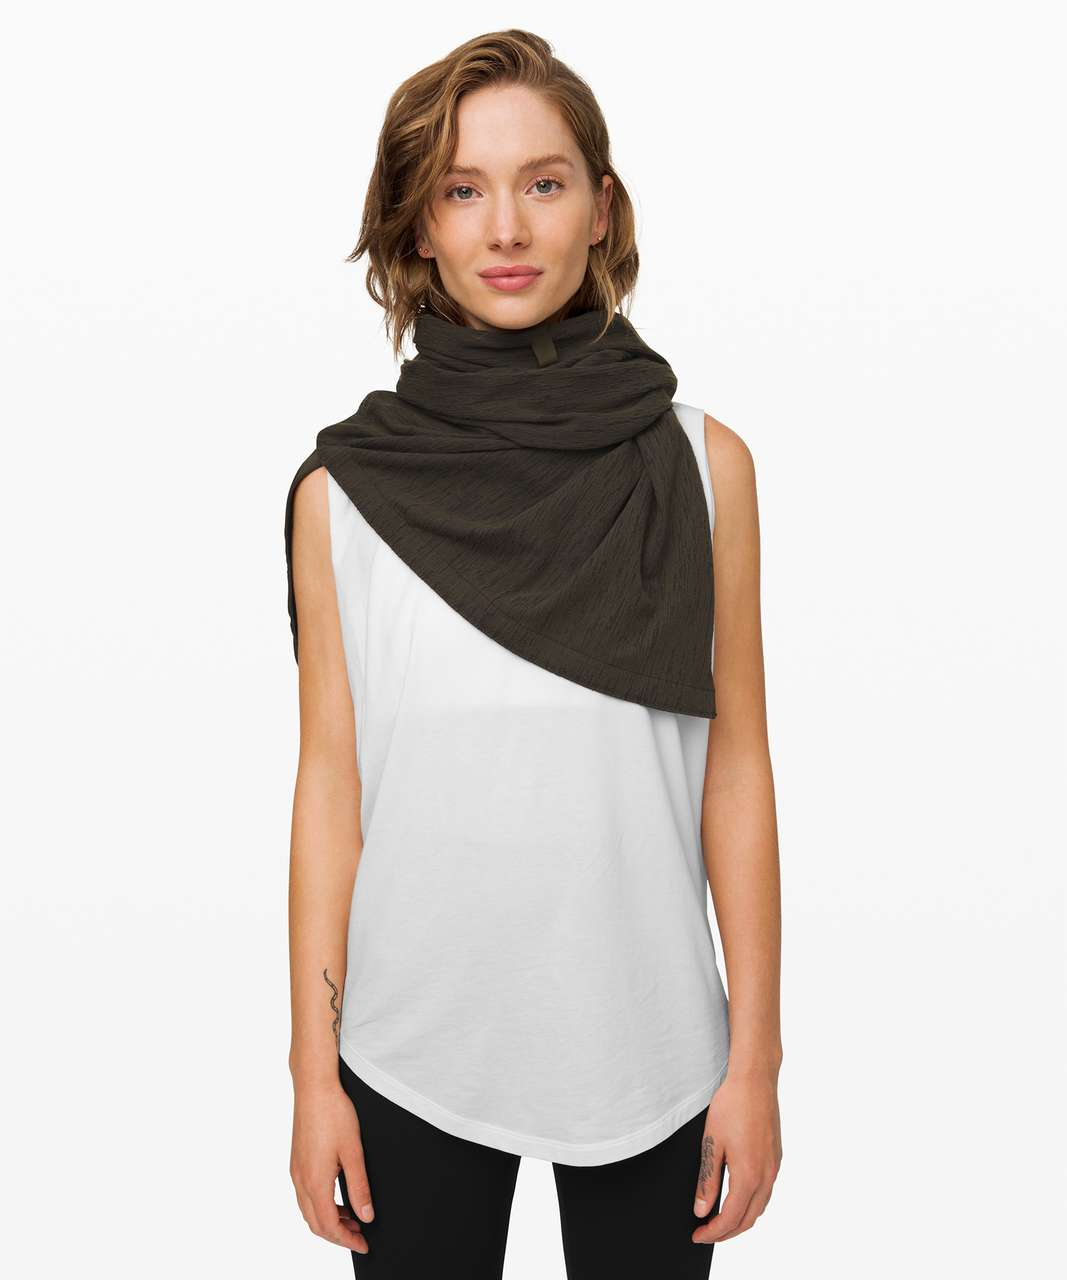 Lululemon Vinyasa Scarf *Rulu - Aqueous Ikat Jacquard Dark Olive Black